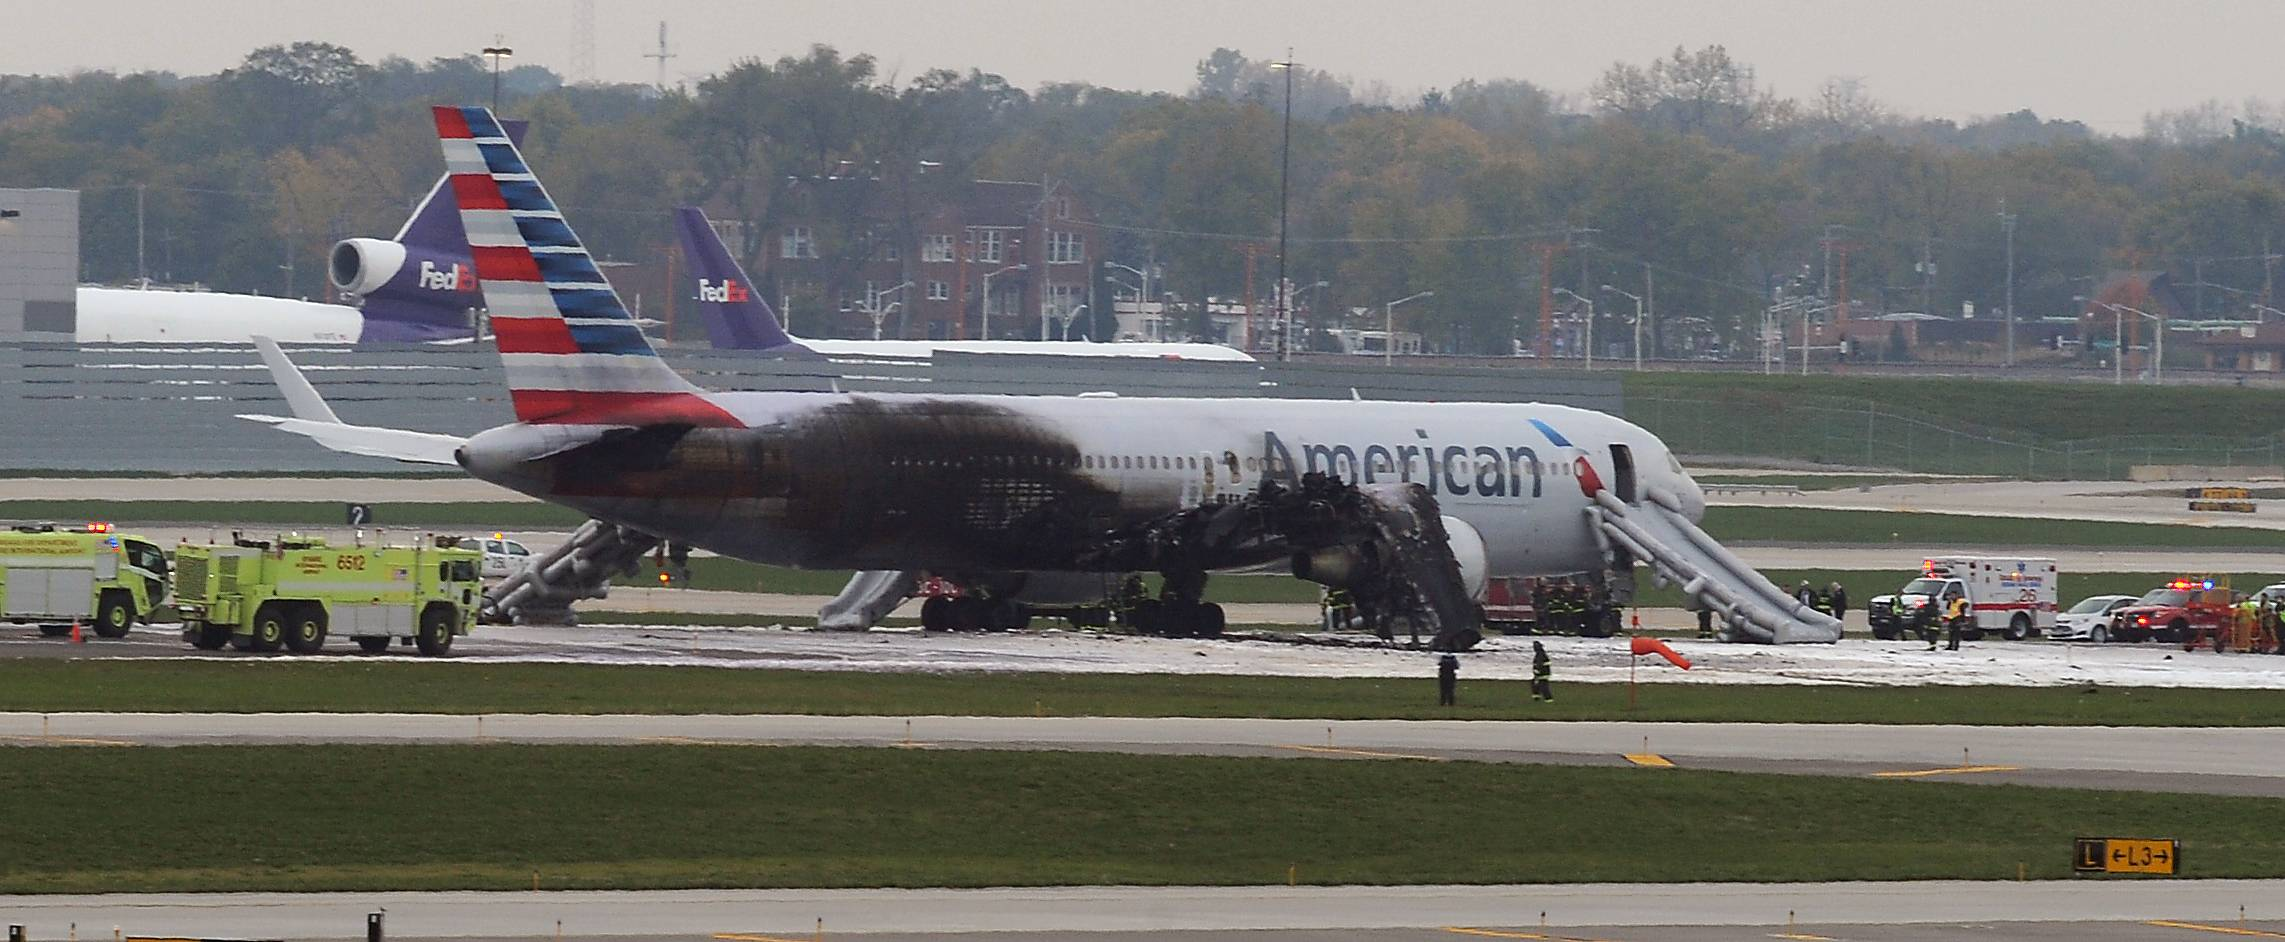 An American Airline plane reveals fire damage on Runway 28R at Chicago O'Hare International Airport Friday.